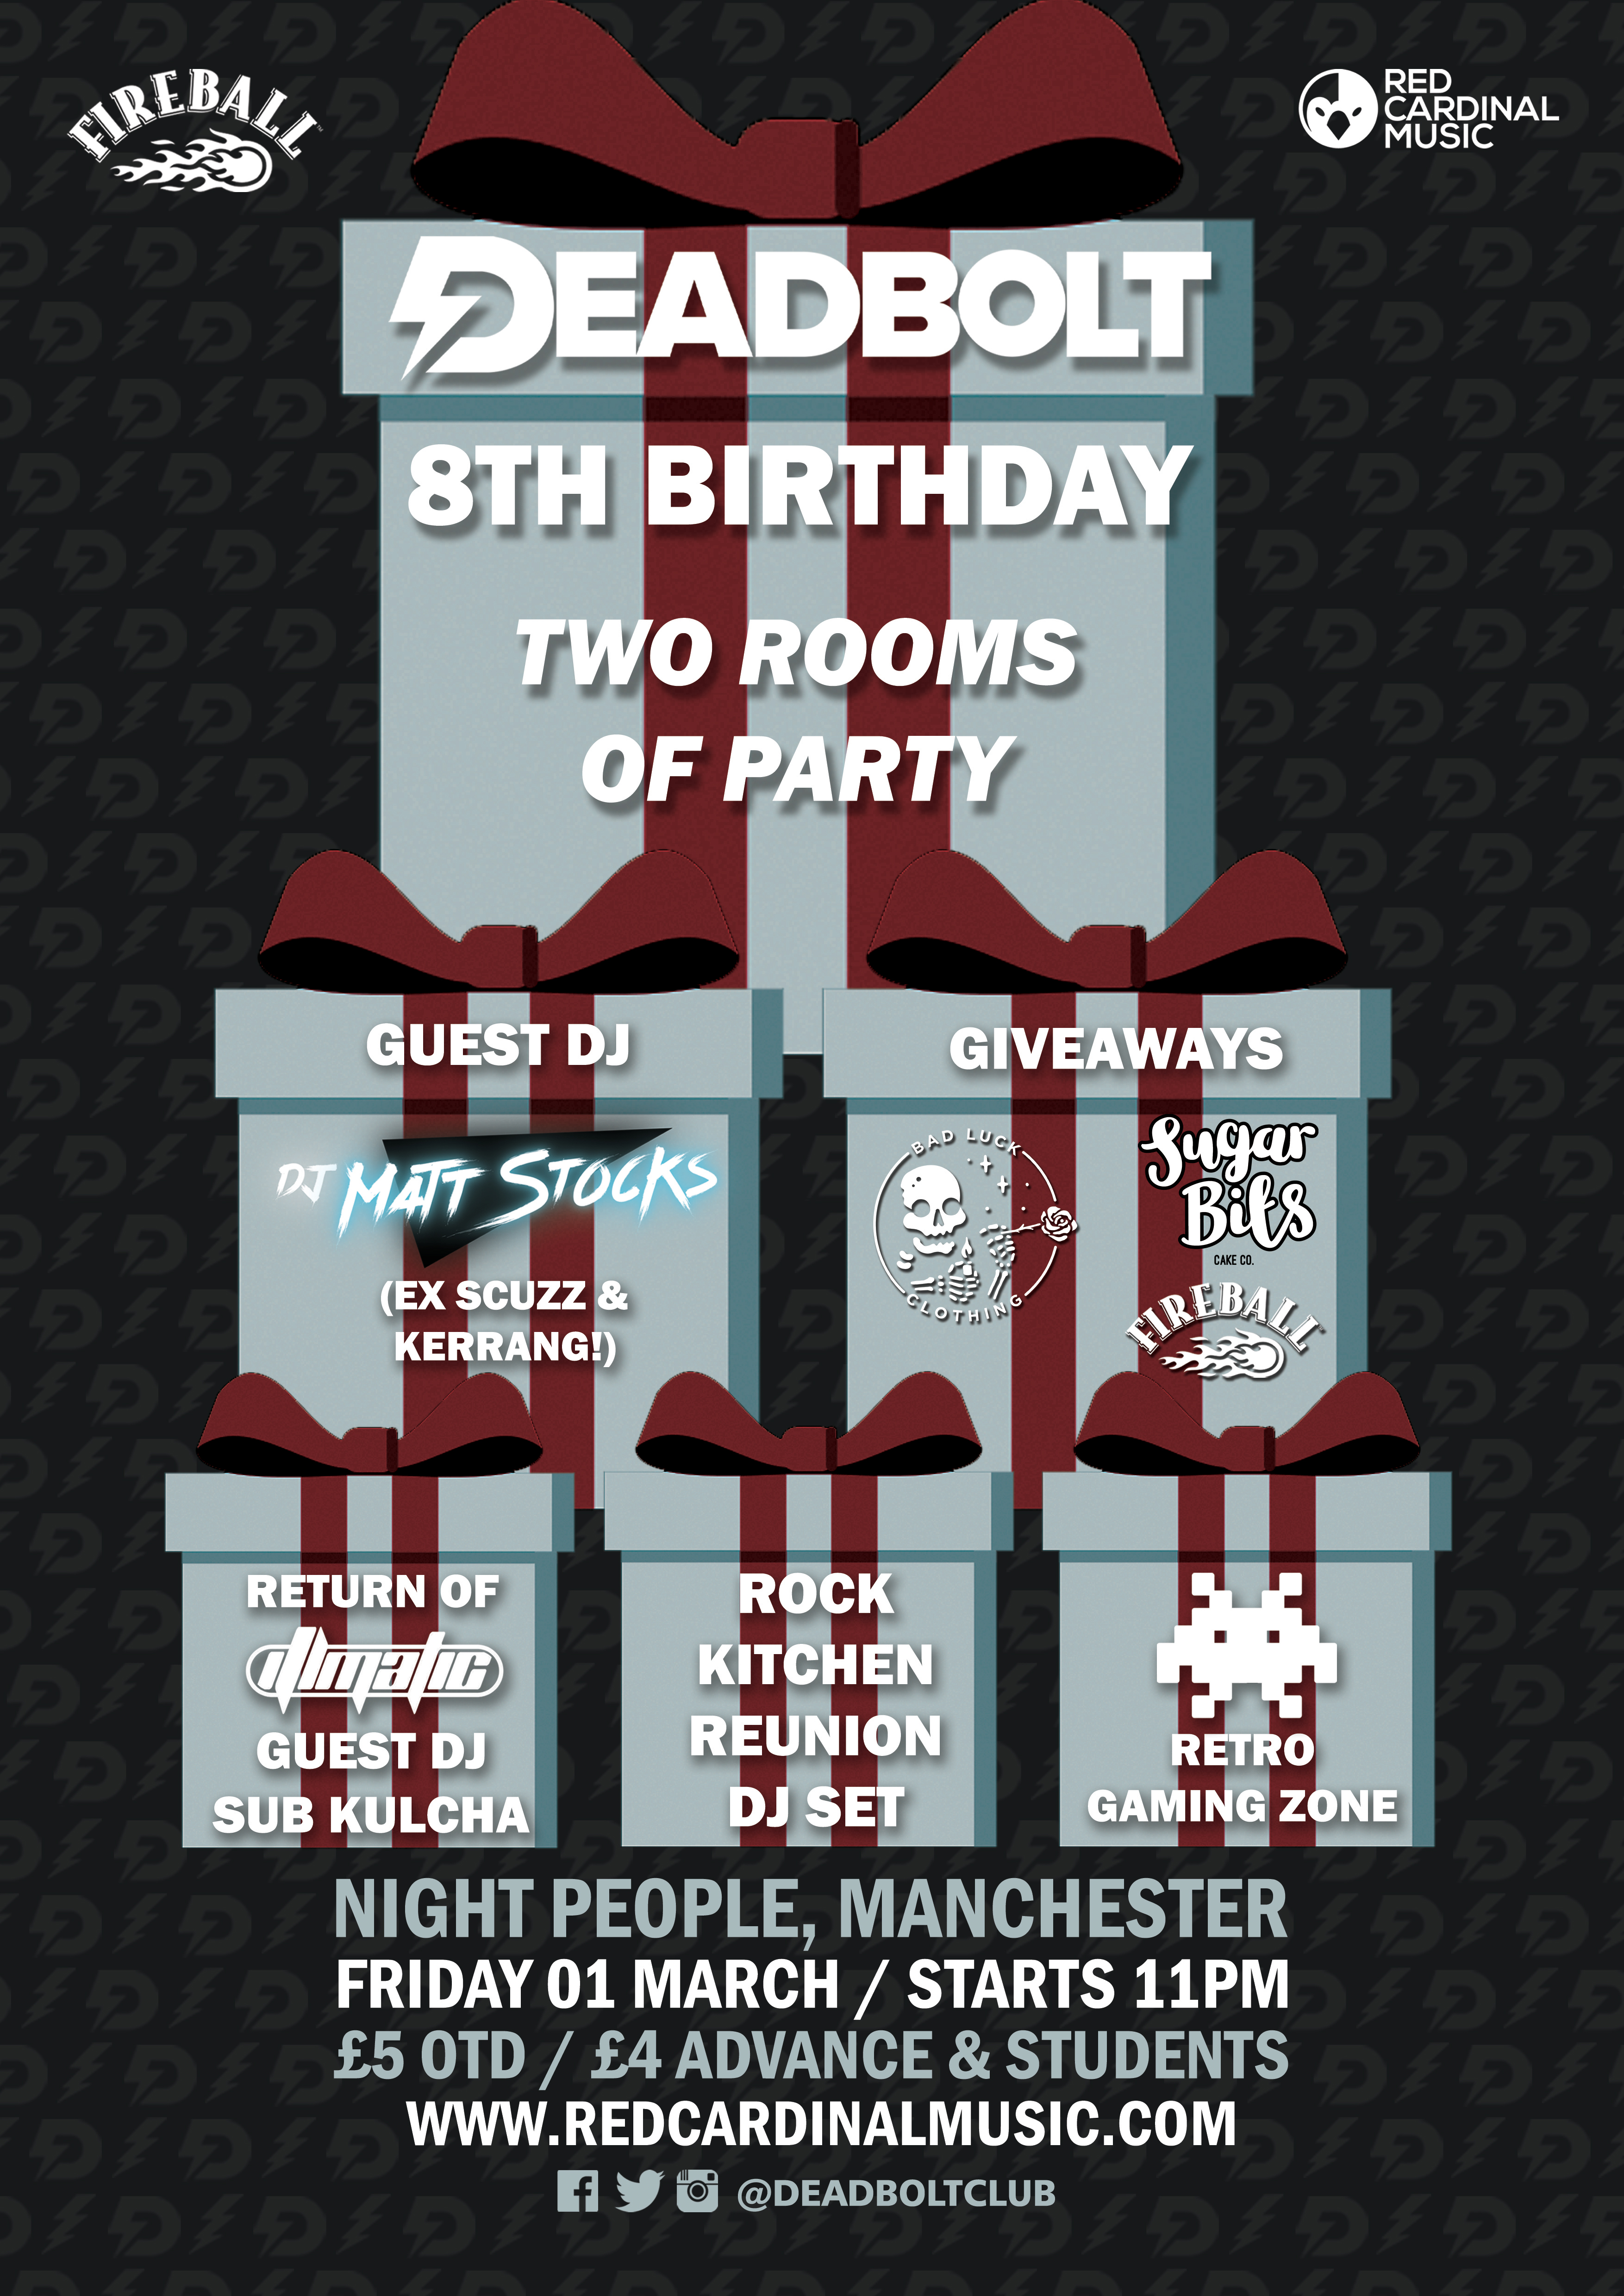 Deadbolt 8th Birthday - Night People - March 19 - RGB For Web